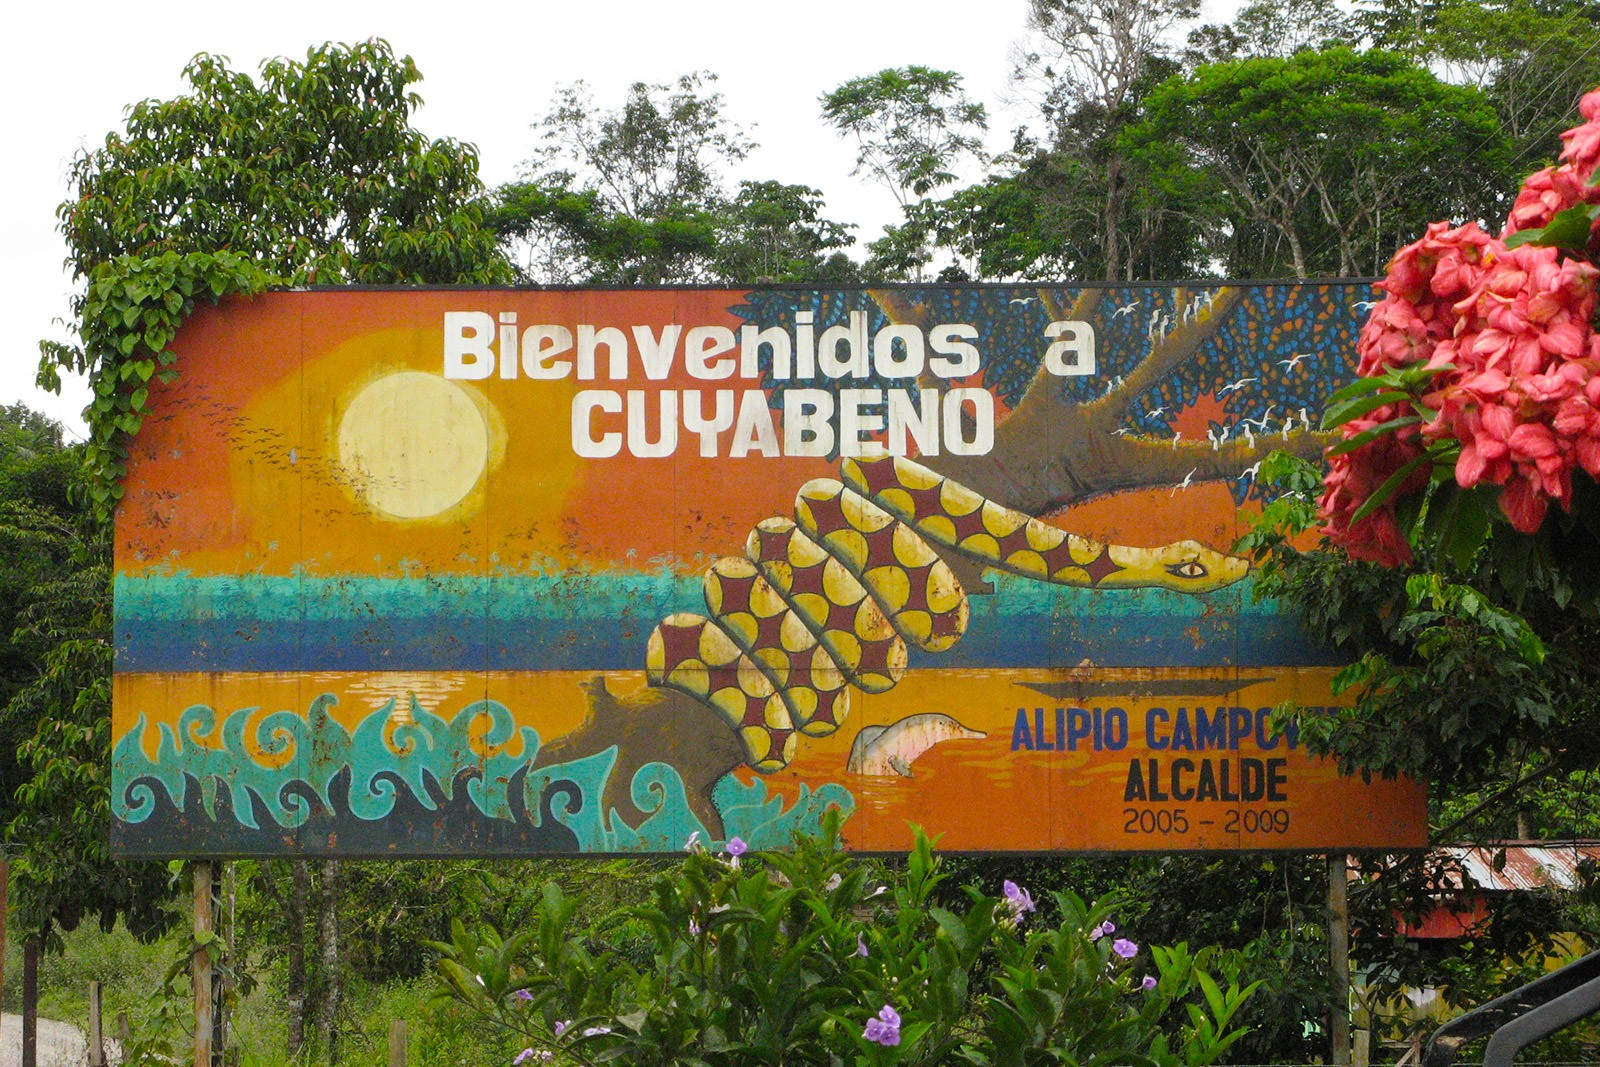 reasons to visit cuyabeno support sustainable